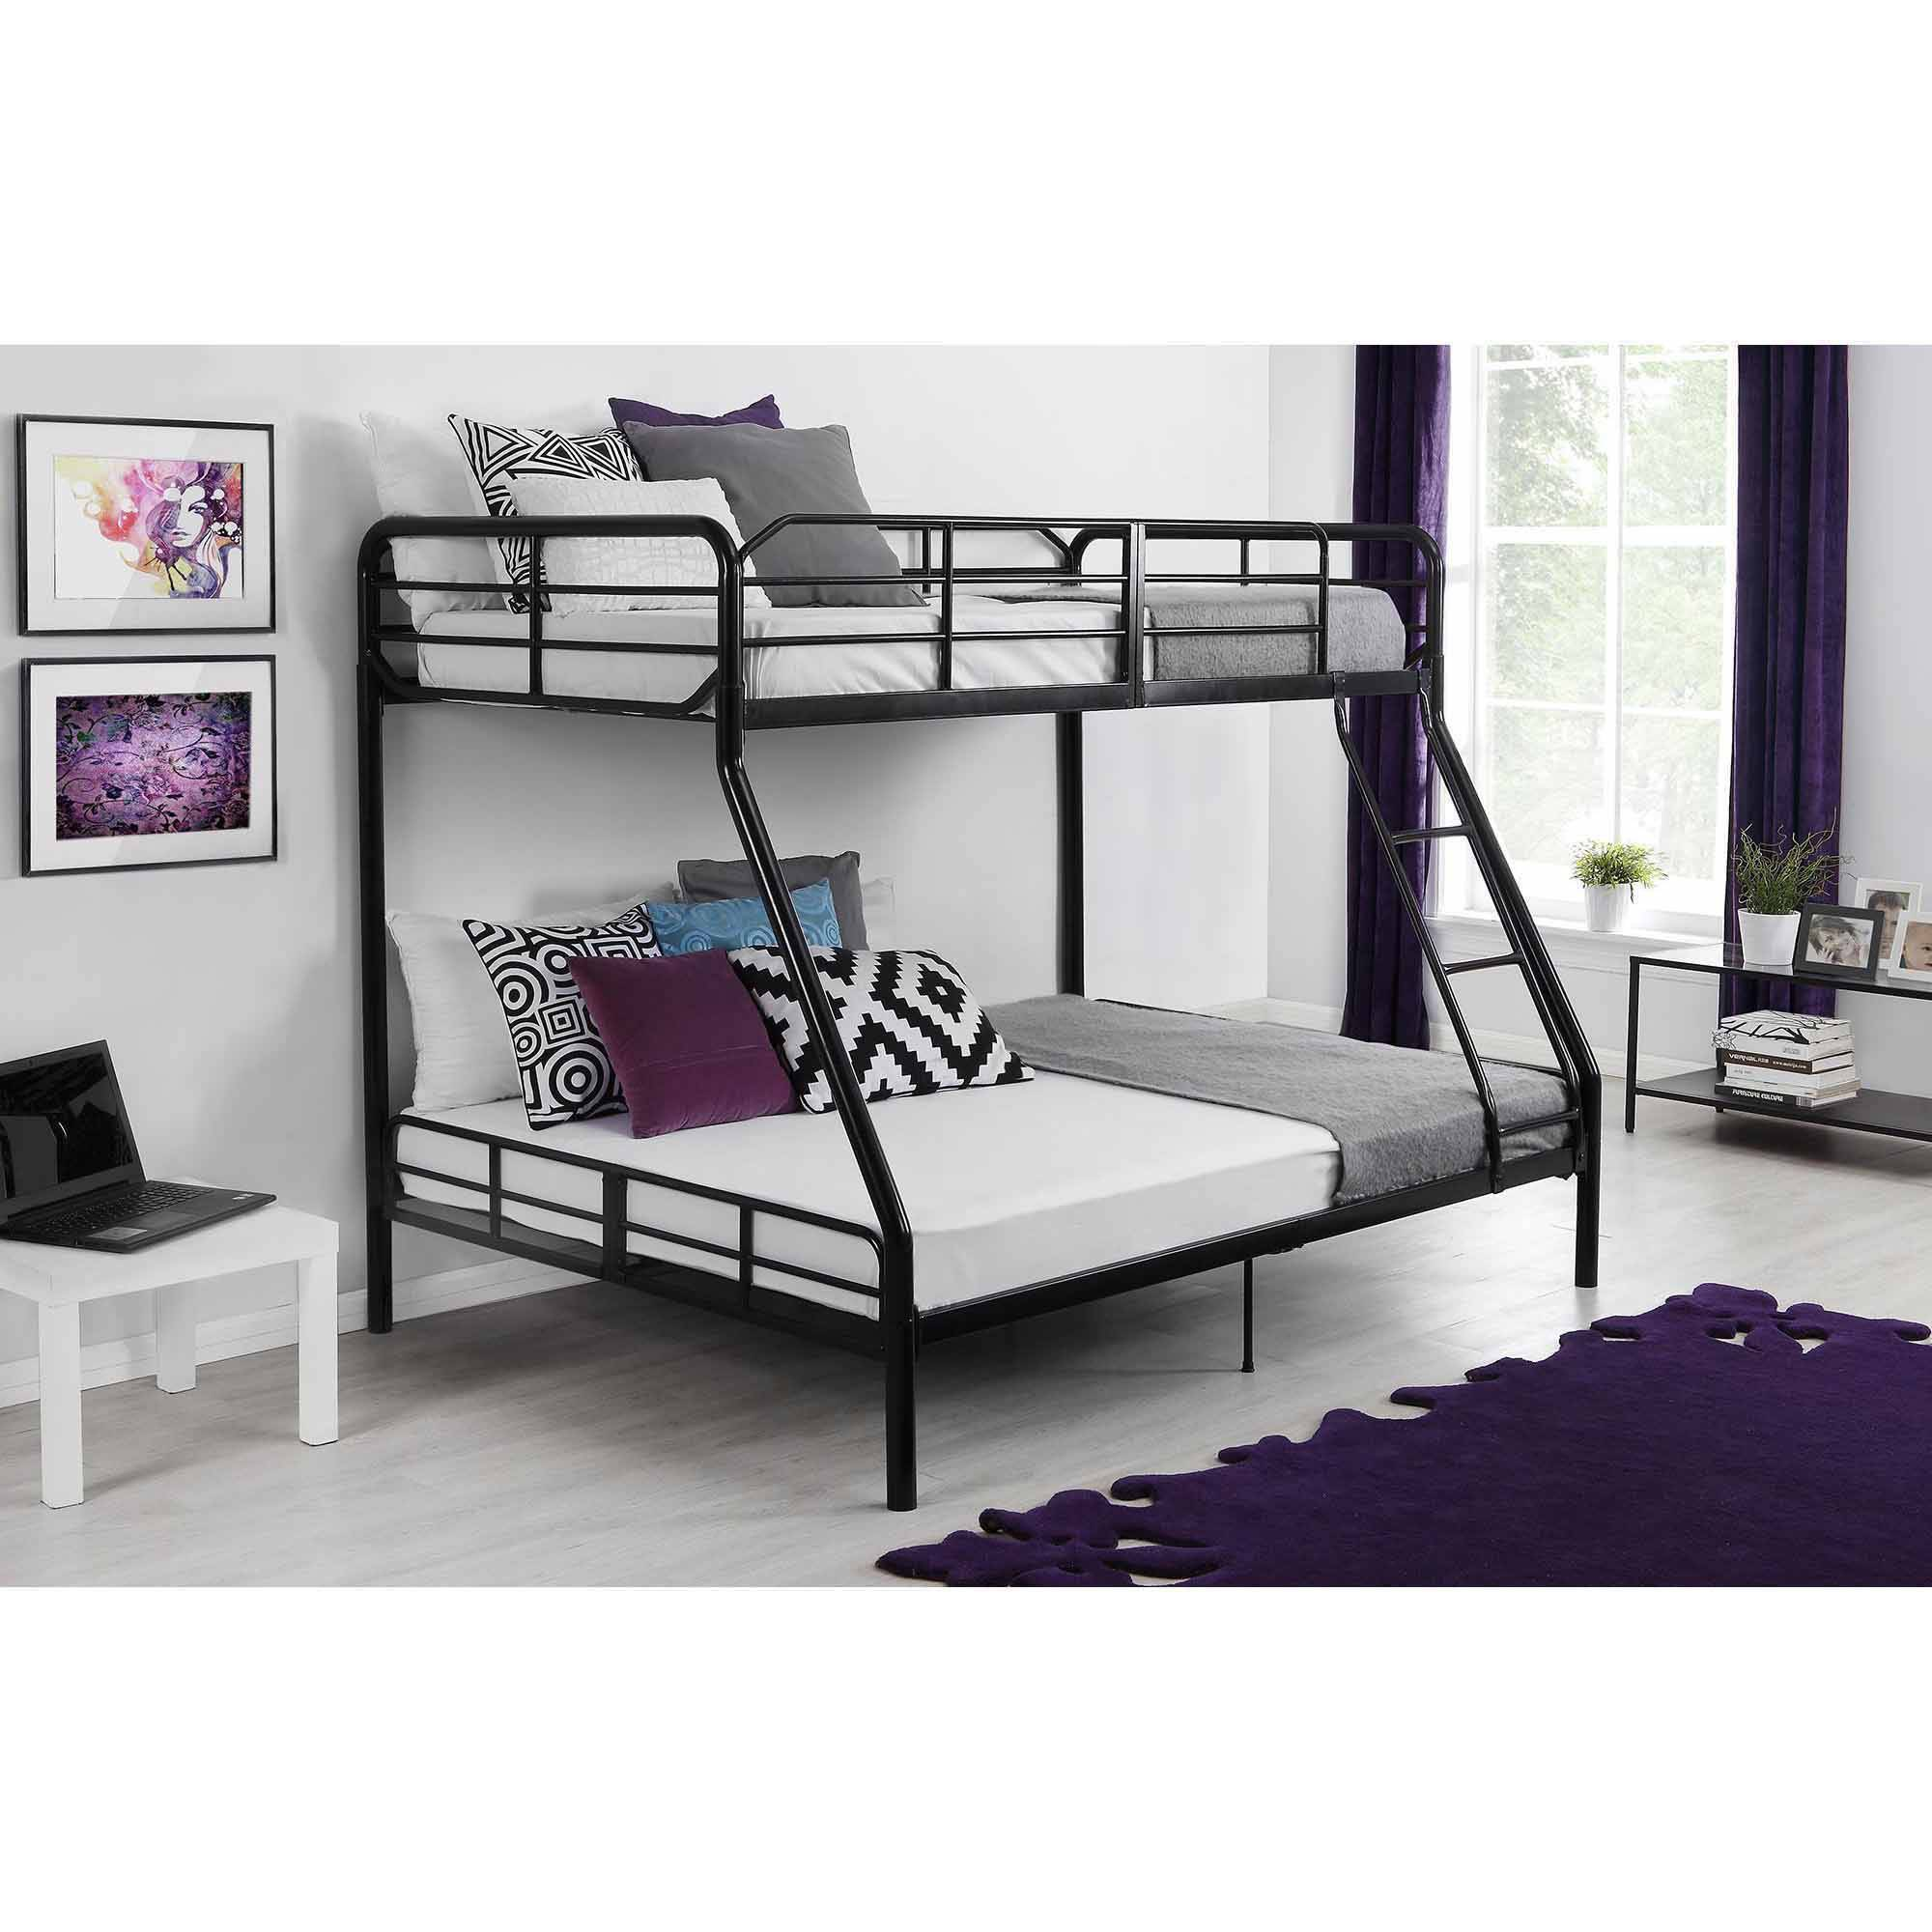 Twin Over Full Metal Bunk Bed W Ladder Kids Bedroom Furniture Dorm